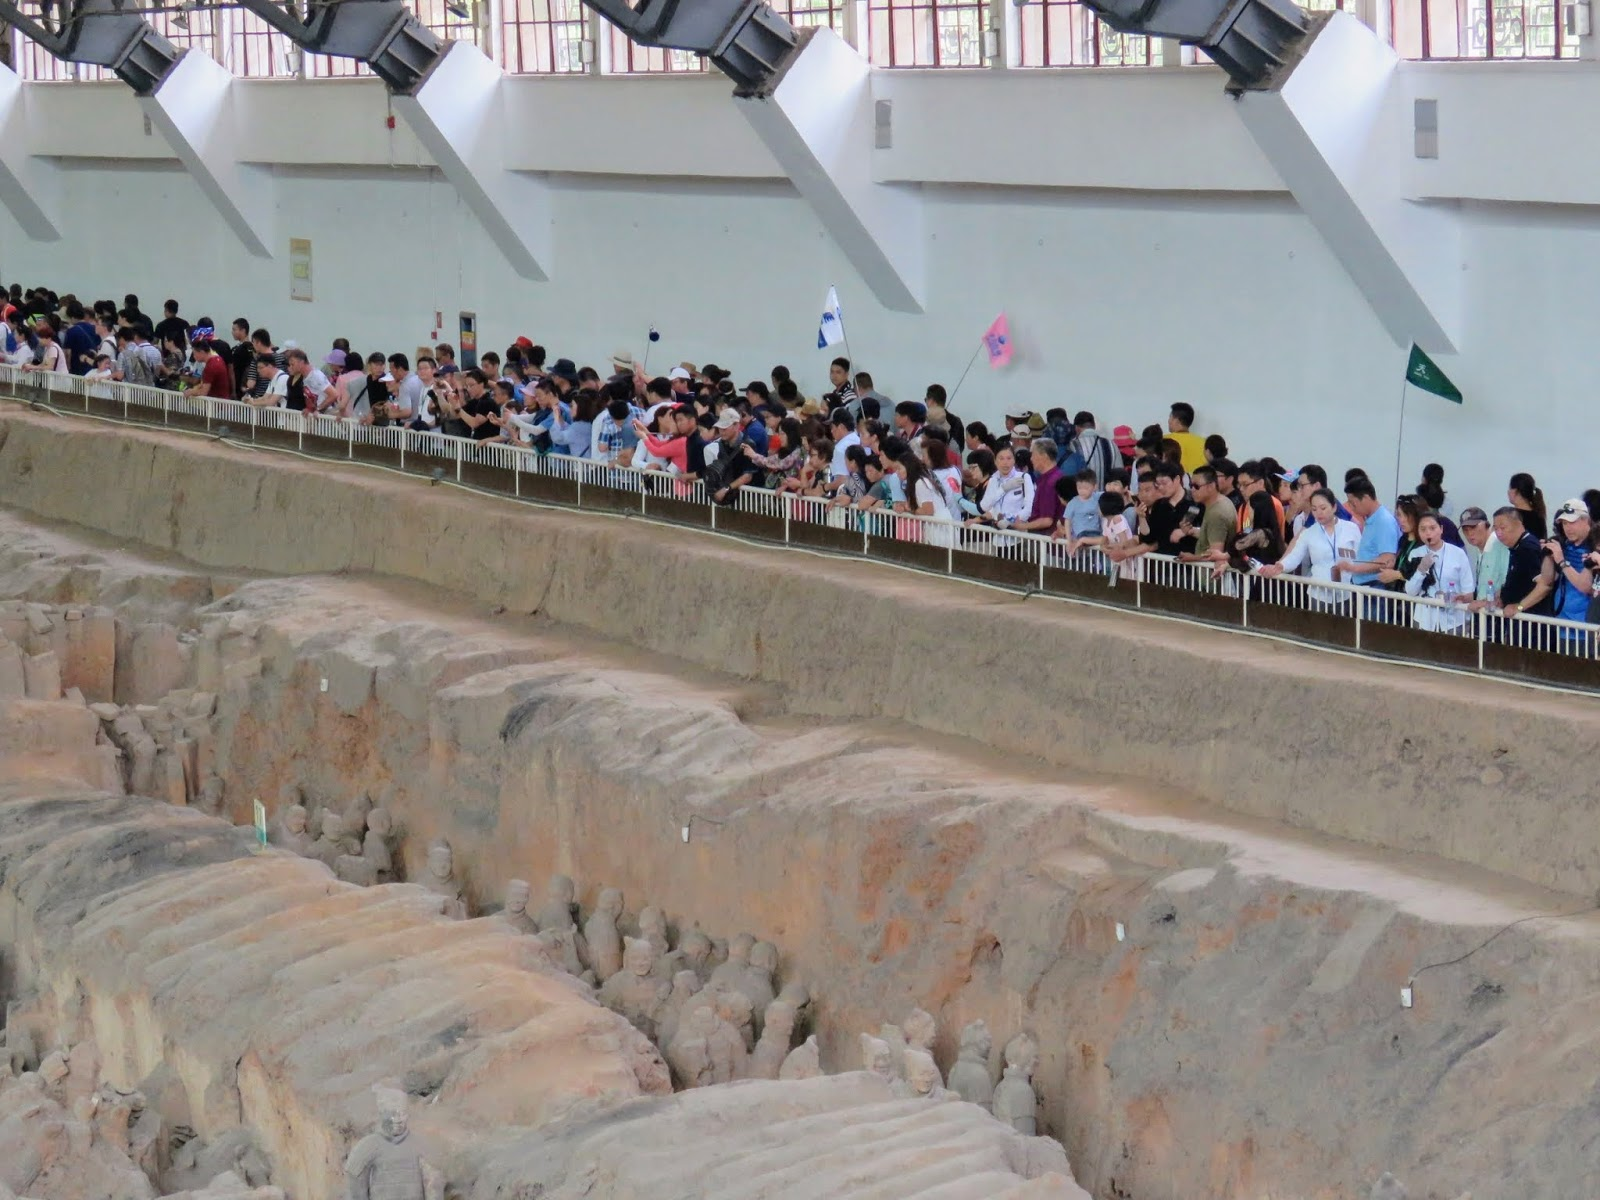 Experience Chinese Quot Guerrilla Tourism Quot When Visiting The Ancient Terracotta Warriors Outside Xi